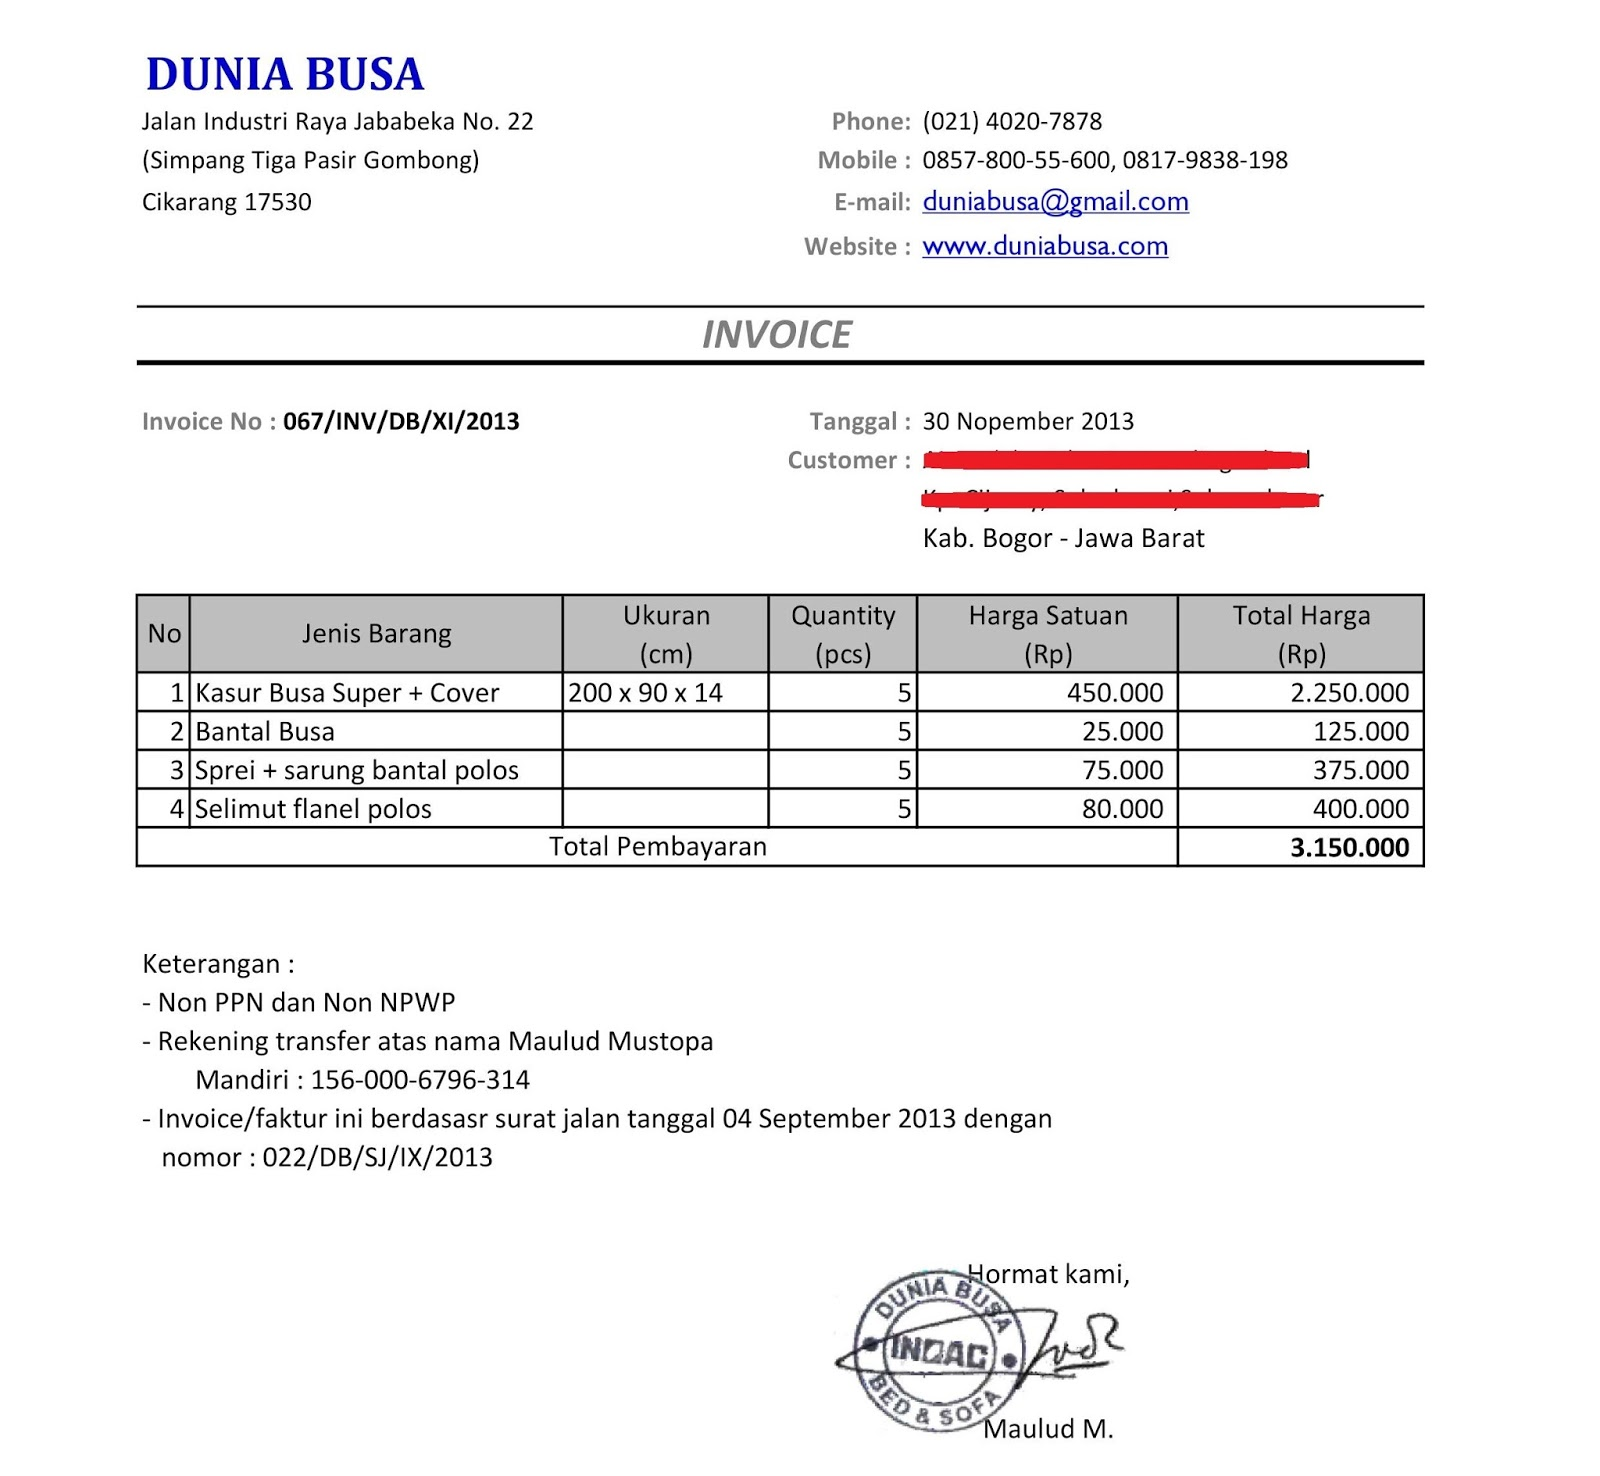 Usdgus  Pretty Free Invoice Online  Create Invoice Online  Invoice Template  With Fascinating Contoh Format Invoice Atau Surat Tagihan  Brankas Arsip  Free Invoice Online With Awesome Target Returns Policy Without Receipt Also Account Receipt In Addition Free Printable Receipt Book And Rent Receipt Format Free Download As Well As Soup Receipt Additionally Receipt Payment Format From Sklepco With Usdgus  Fascinating Free Invoice Online  Create Invoice Online  Invoice Template  With Awesome Contoh Format Invoice Atau Surat Tagihan  Brankas Arsip  Free Invoice Online And Pretty Target Returns Policy Without Receipt Also Account Receipt In Addition Free Printable Receipt Book From Sklepco